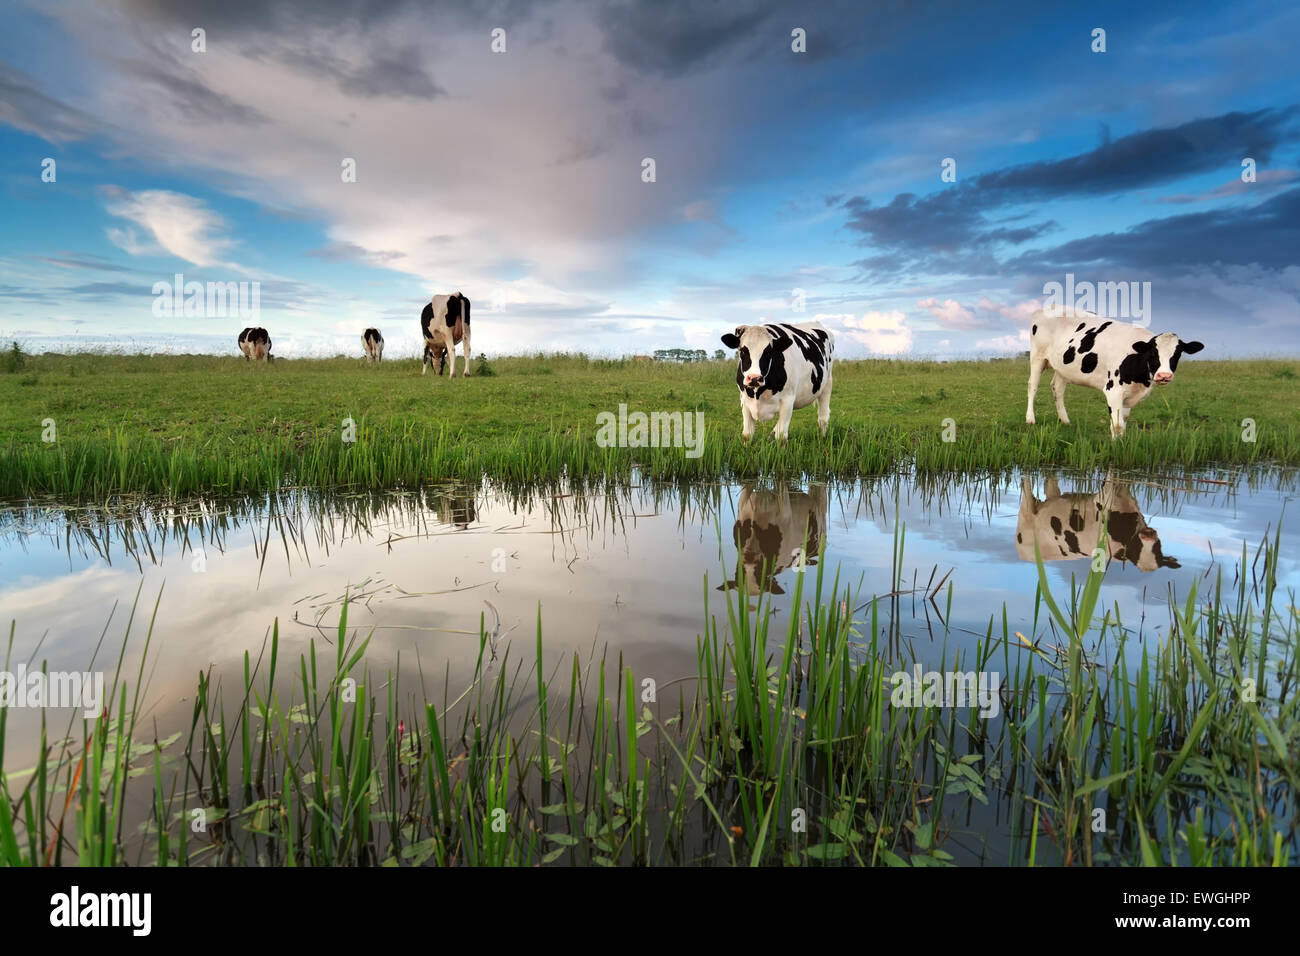 Les vaches au pâturage par rivière sur sunset sky Photo Stock